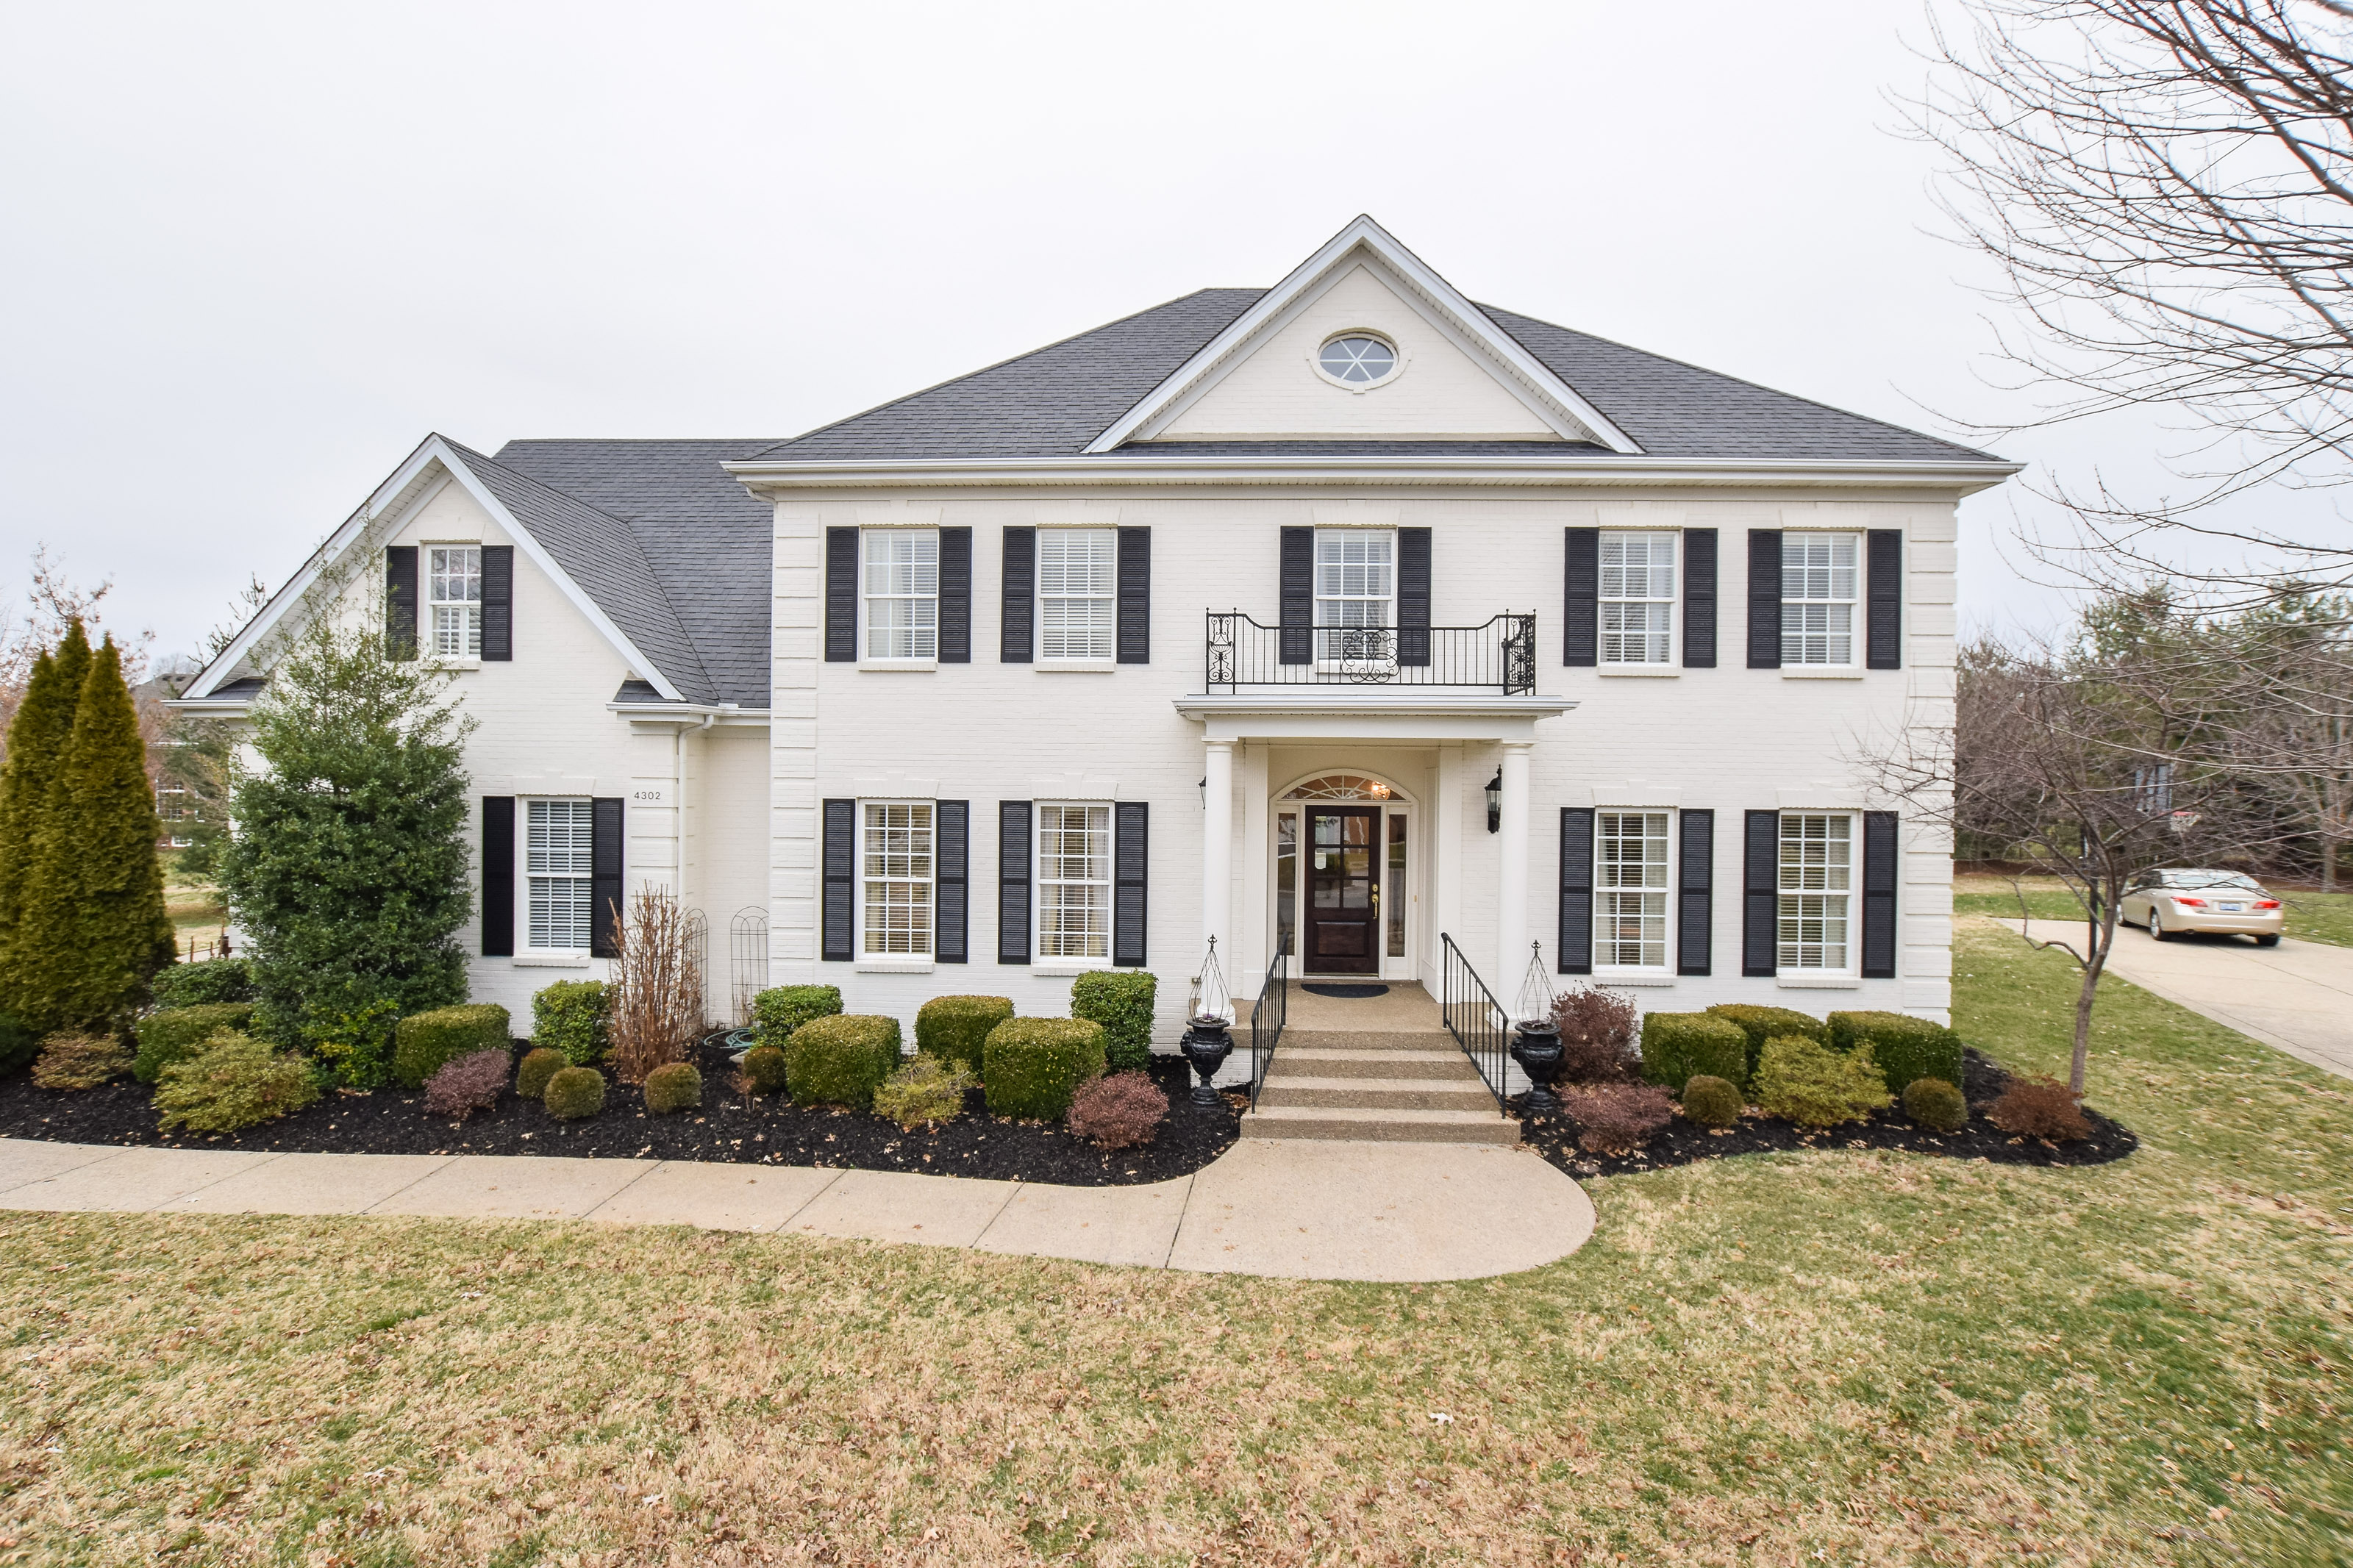 Single Family Home for Sale at 4302 Ashleycreek Cout 4302 Ashleycreek Court Louisville, Kentucky 40241 United States